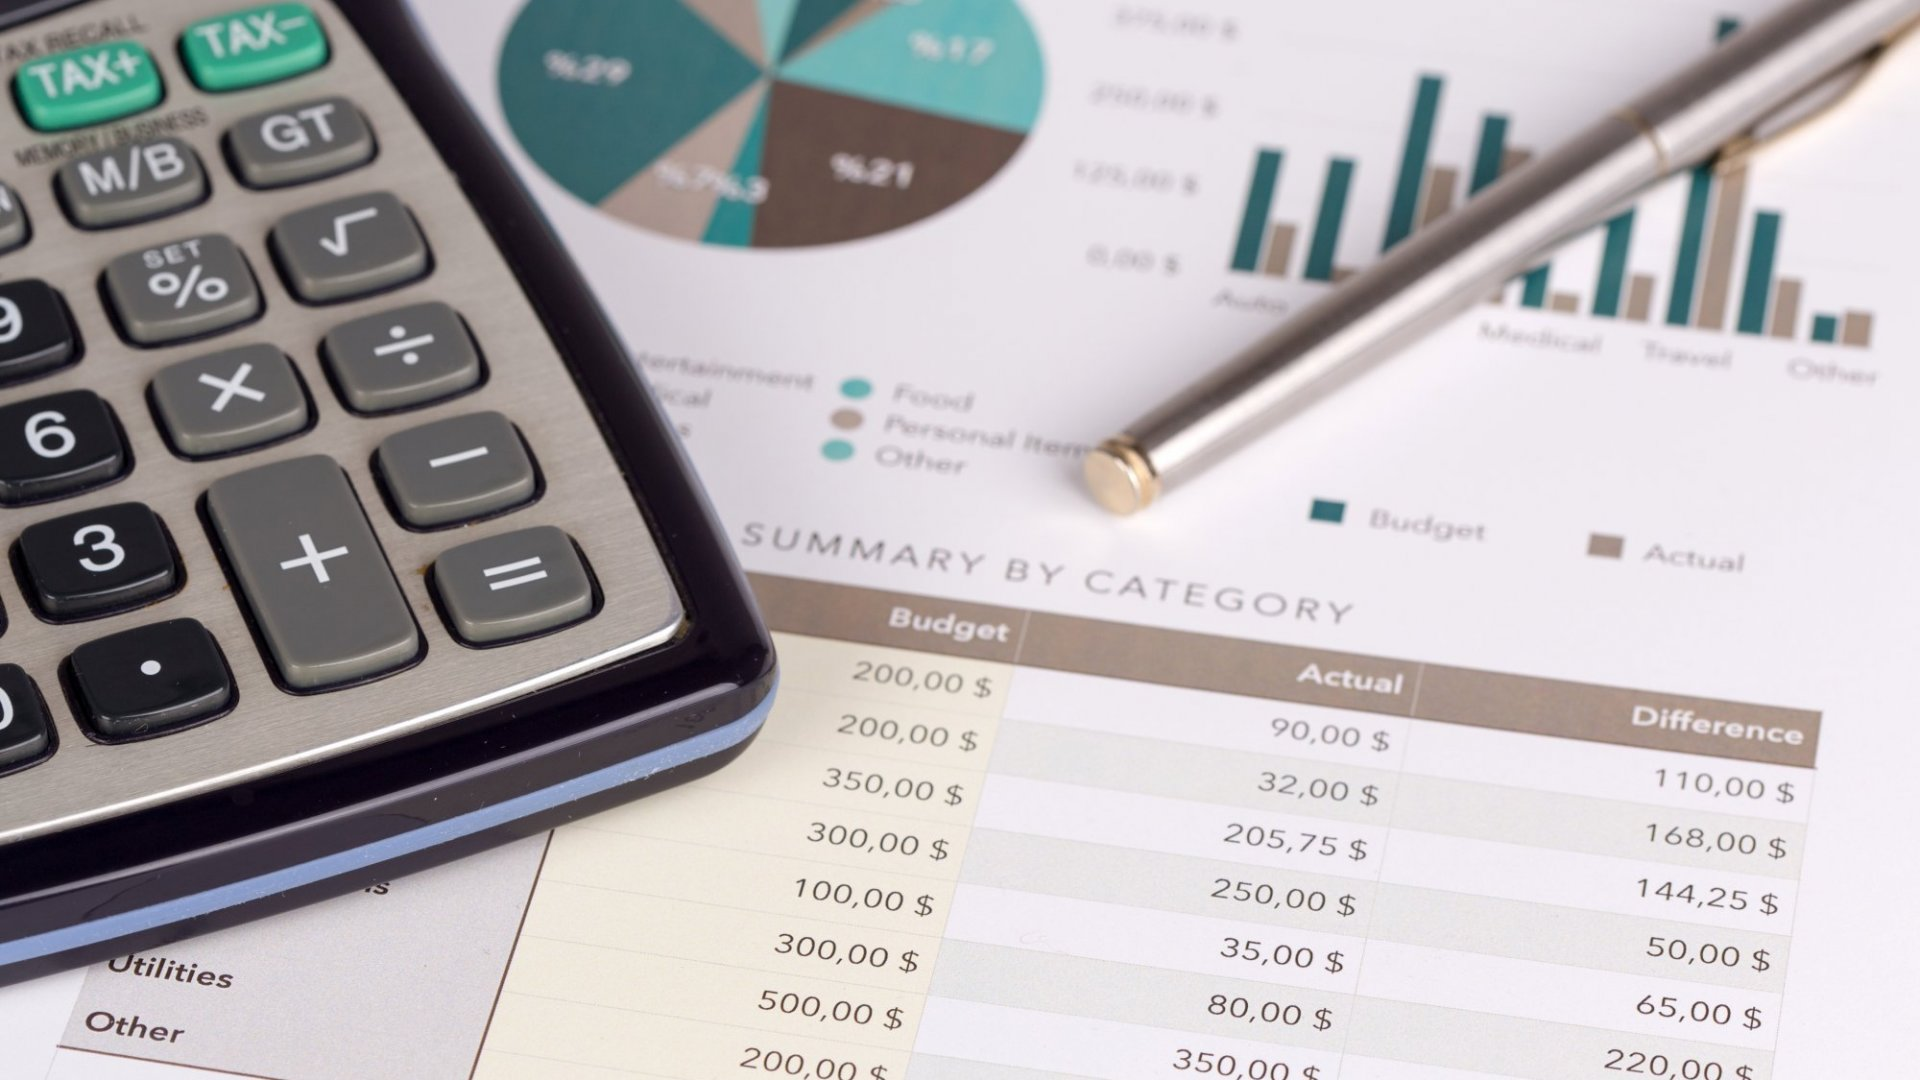 Want to Learn QuickBooks for Free? These 11 Places Will Make You a Money Expert